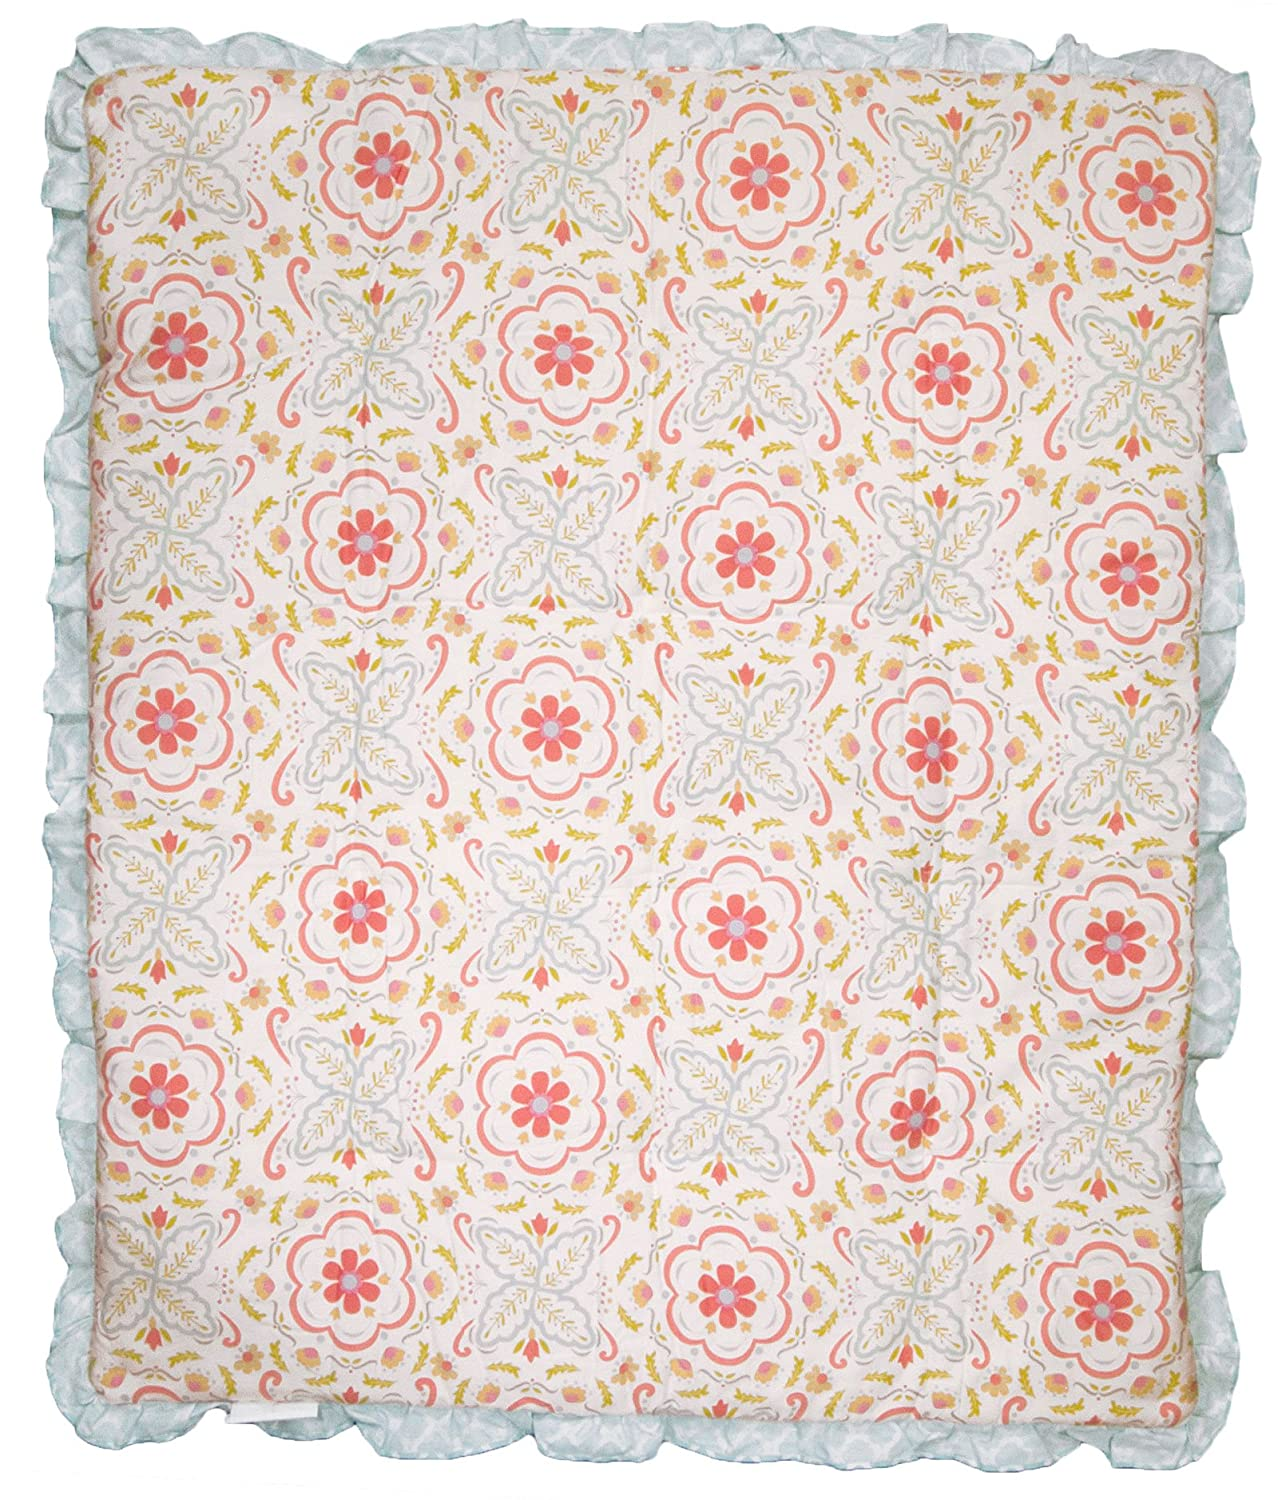 Mila Coral and Blue Floral Patchwork 4 Piece Baby Girl Crib Bedding by Peanut Shell